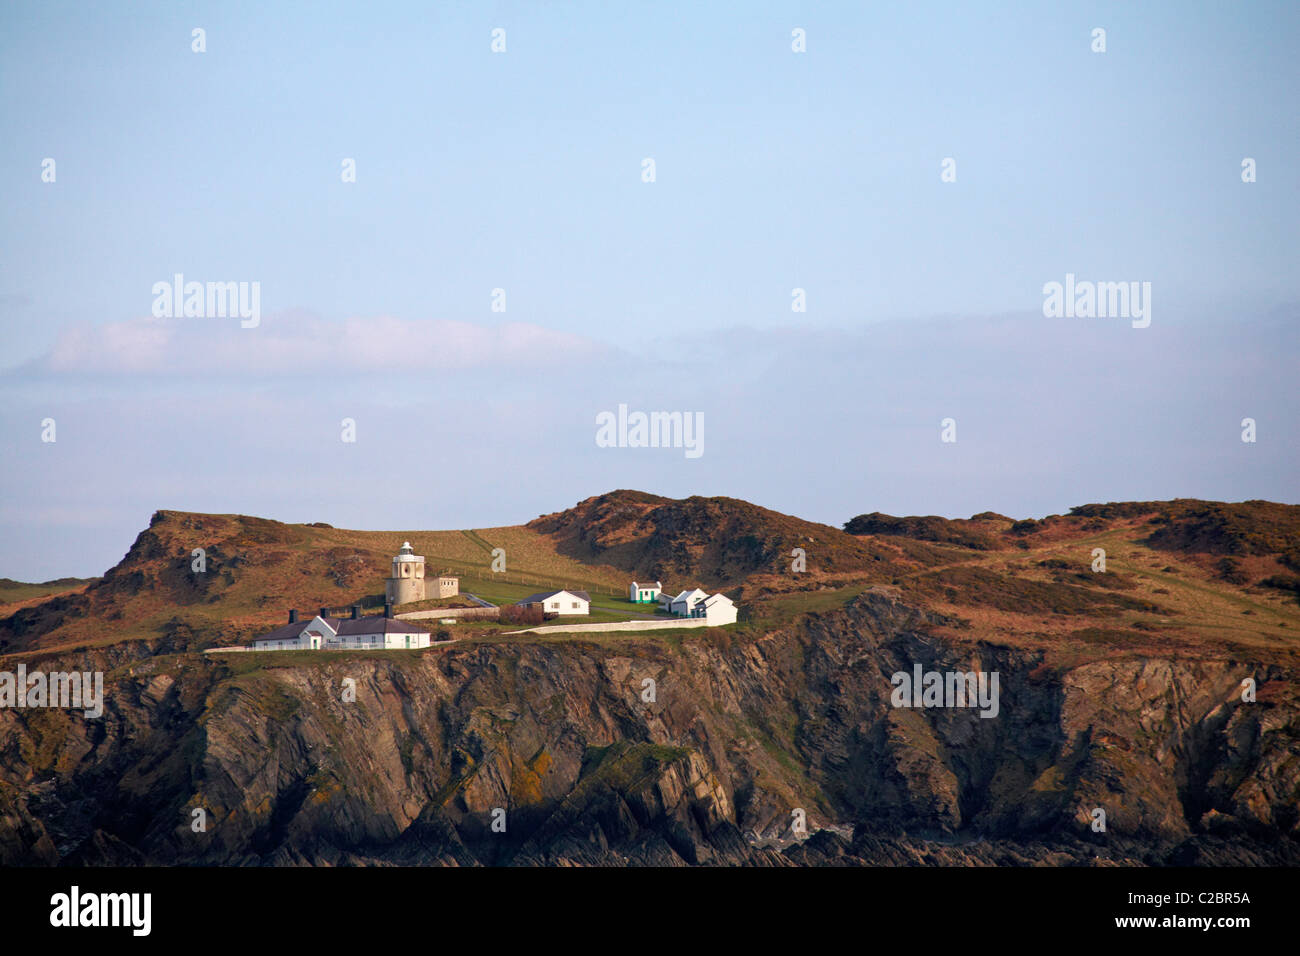 Bull Point lighthouse; Morthoe viewed from the sea in March - Stock Image